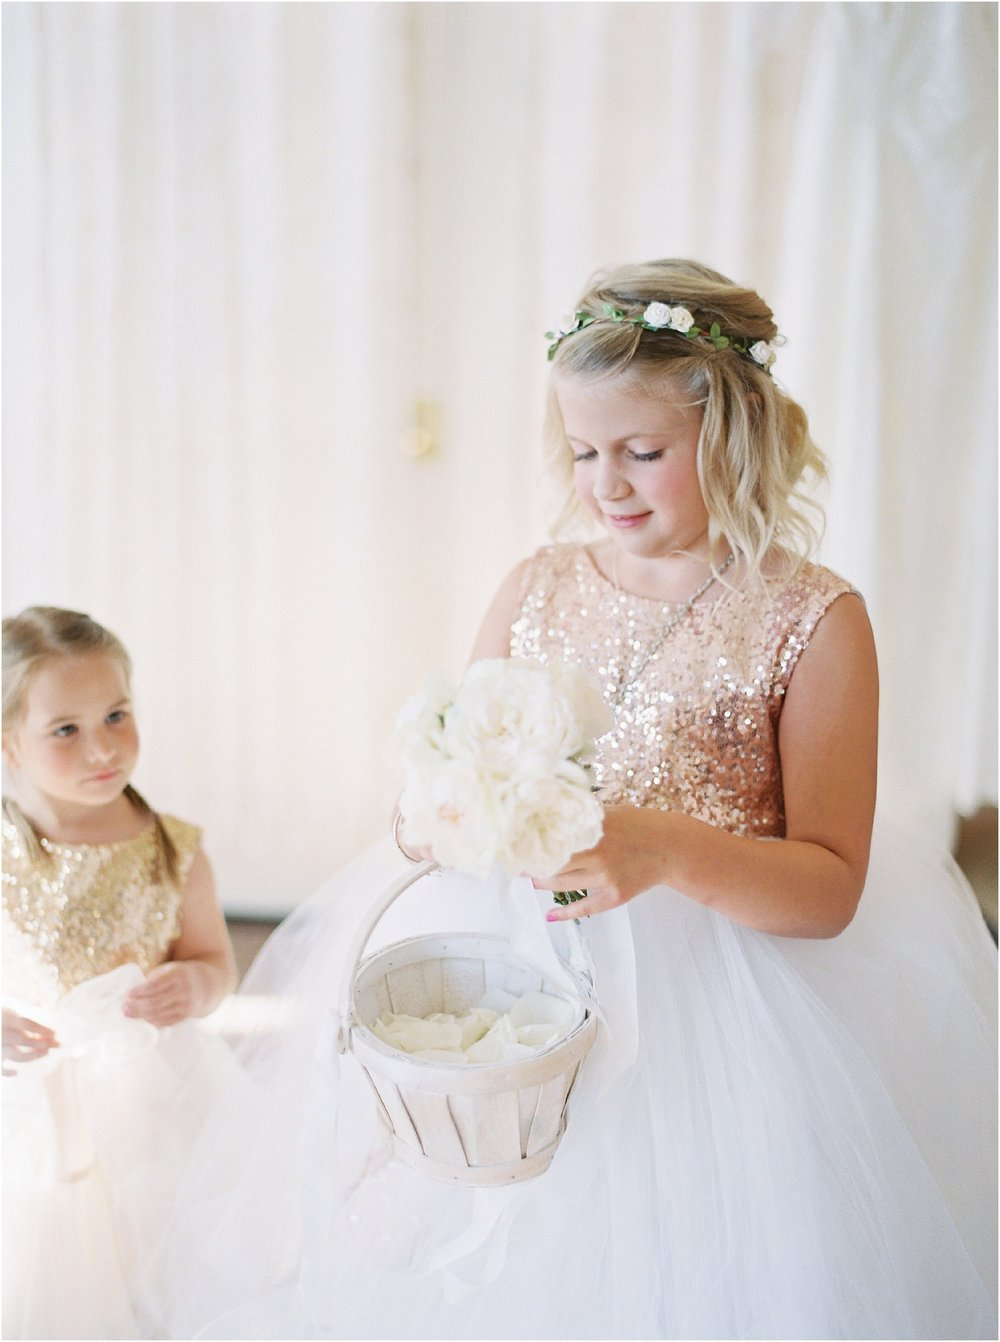 JeremiahRachelPhotography_GreenwoodEvents_LaVentaInnWedding_PalosVerdesWedding0013.JPG